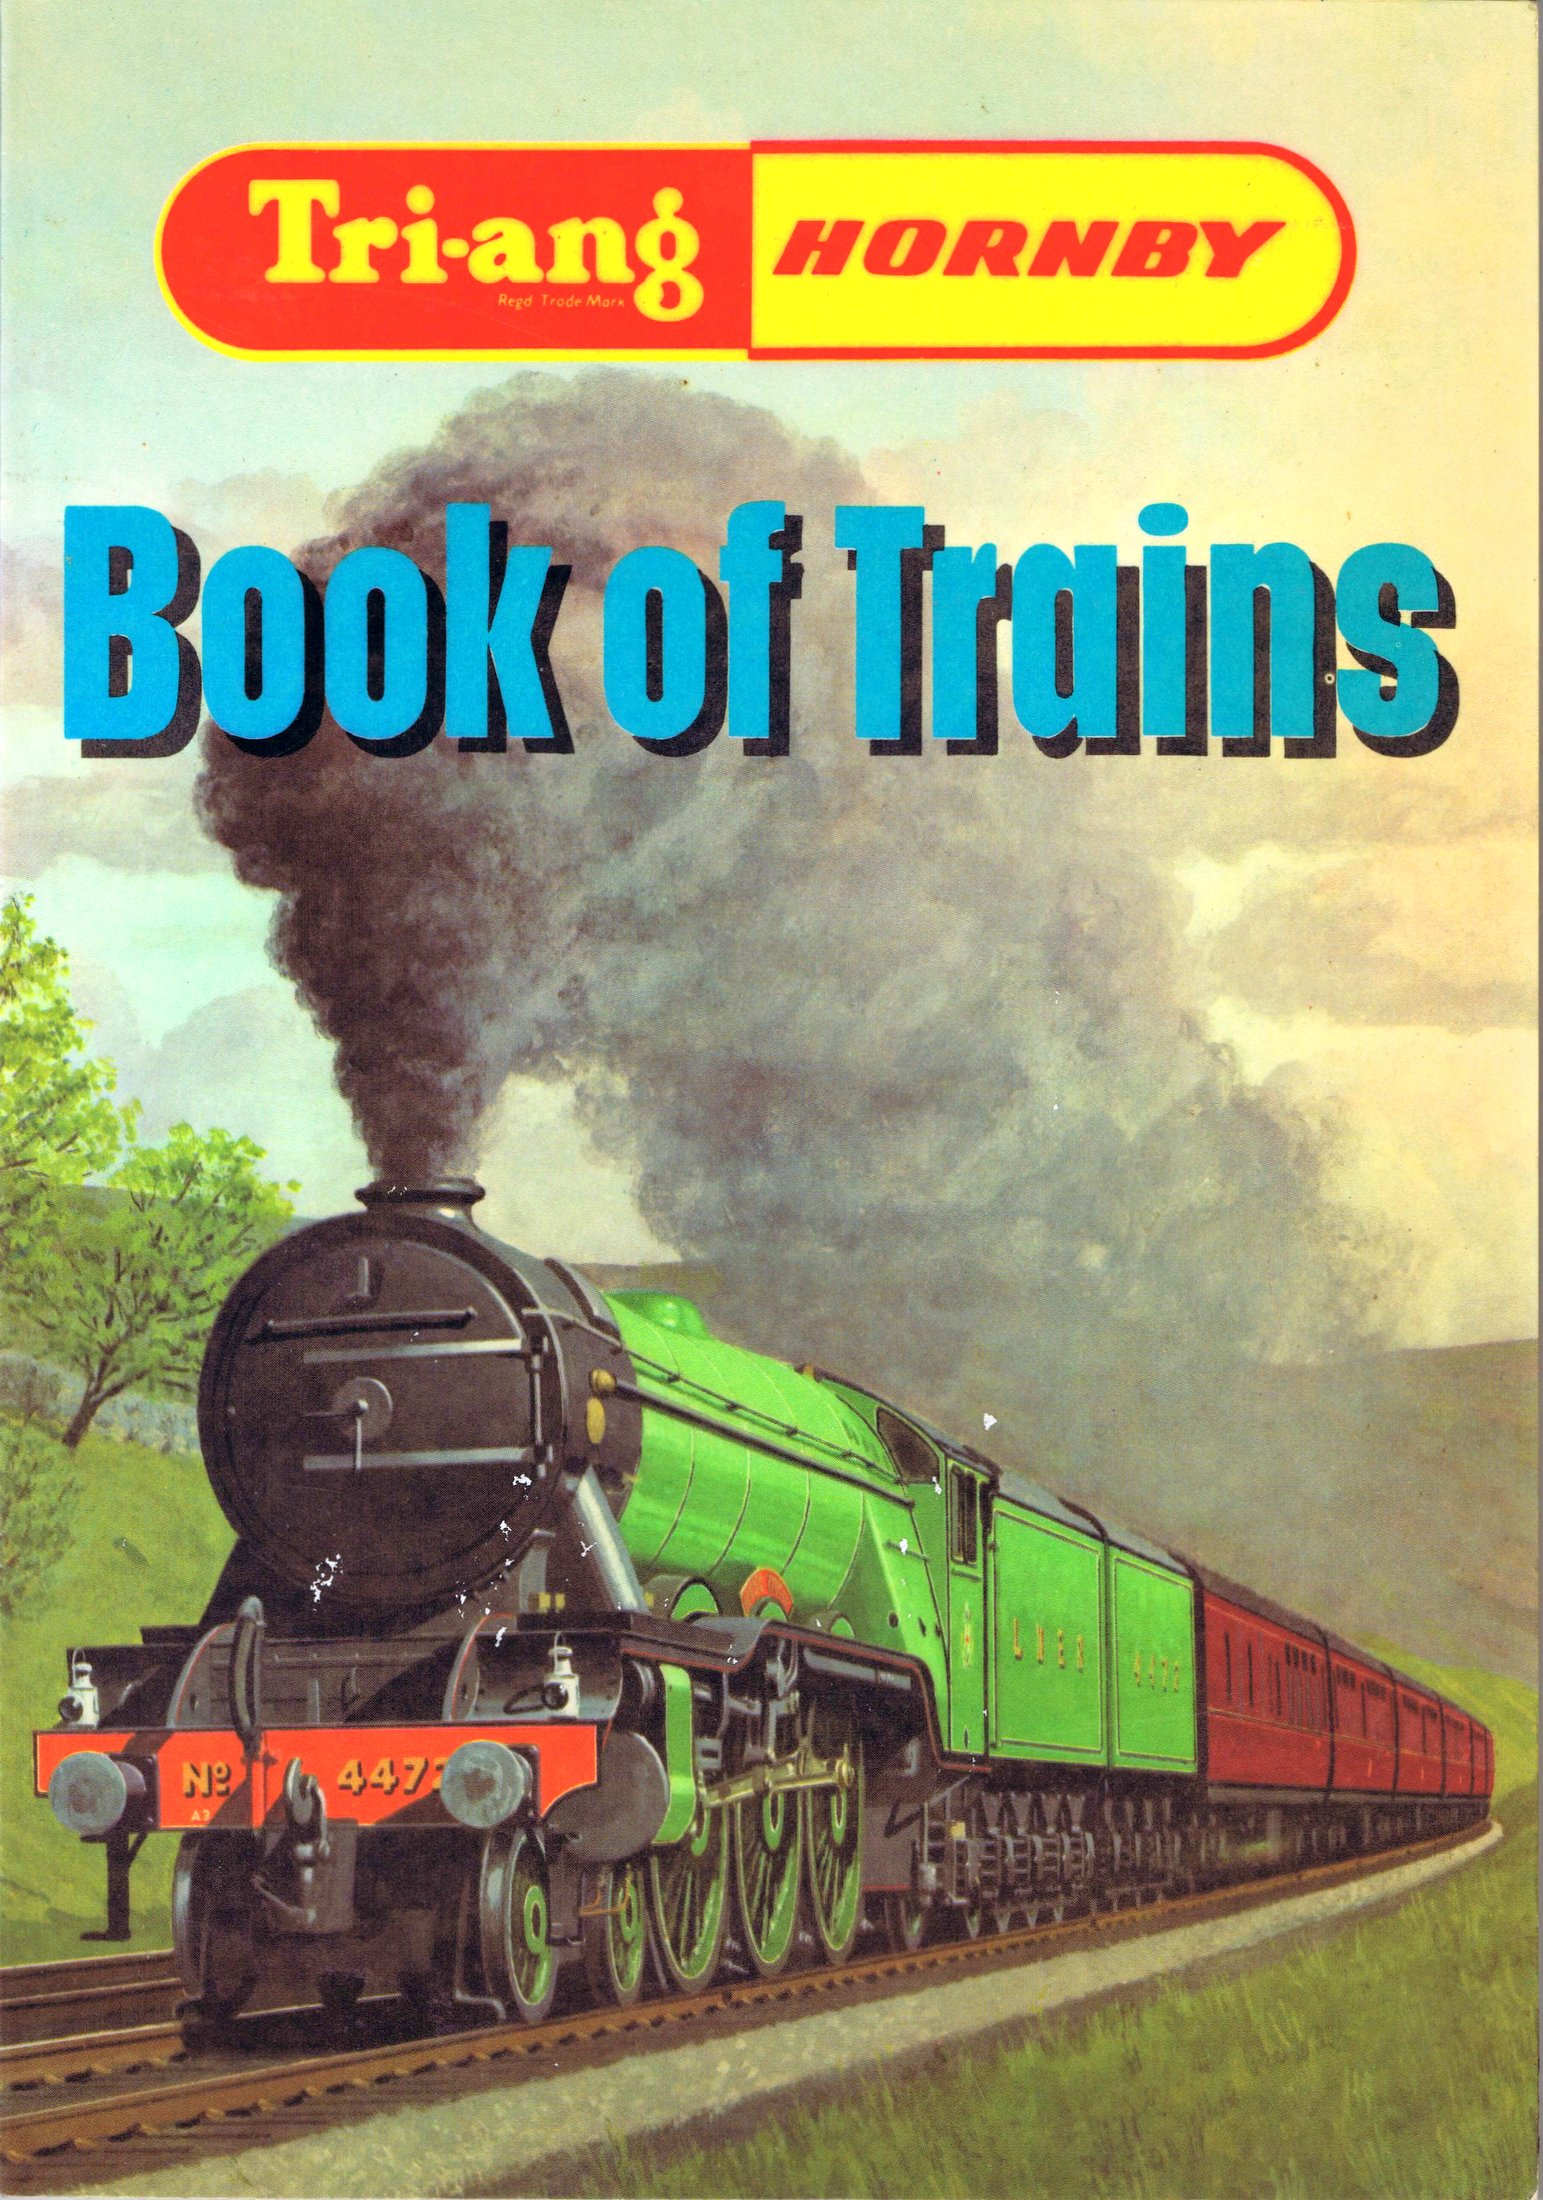 1968 and 1969: Tri-ang Hornby Book of Trains, echoing the old Hornby